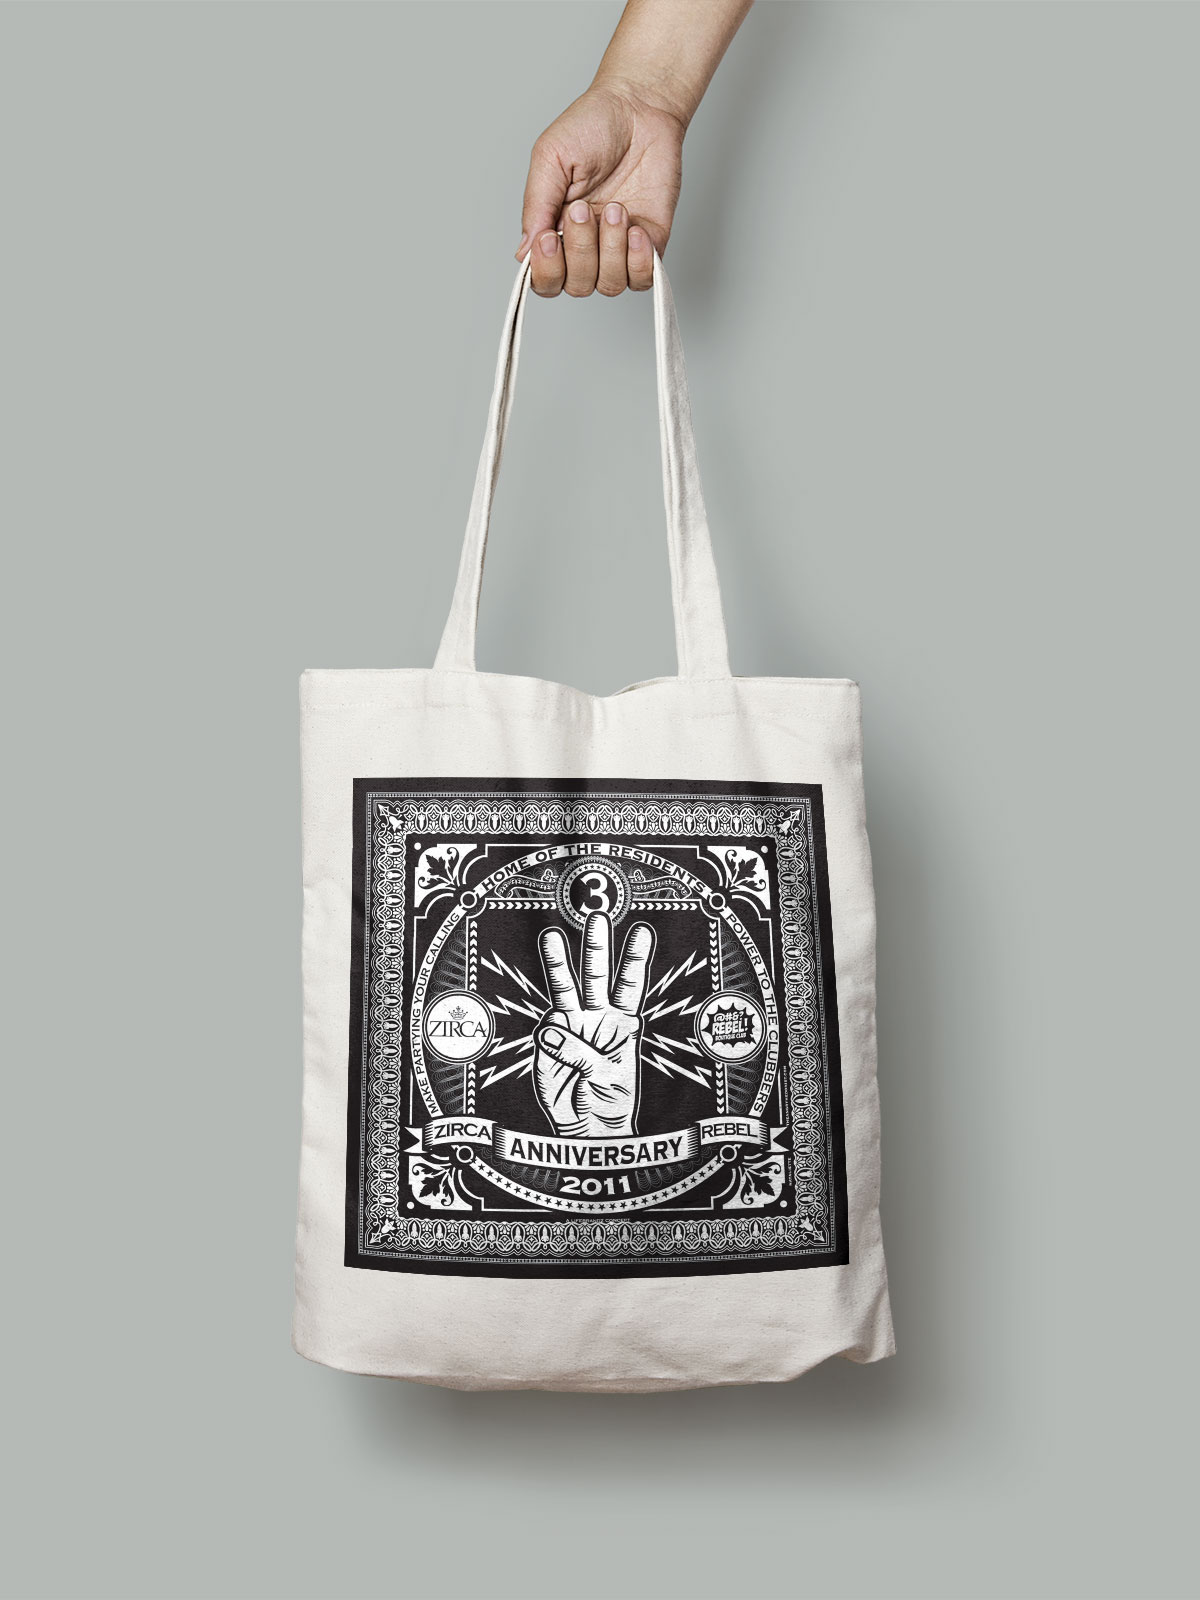 A totebag was produced to be given away as a special doorgift for the event.